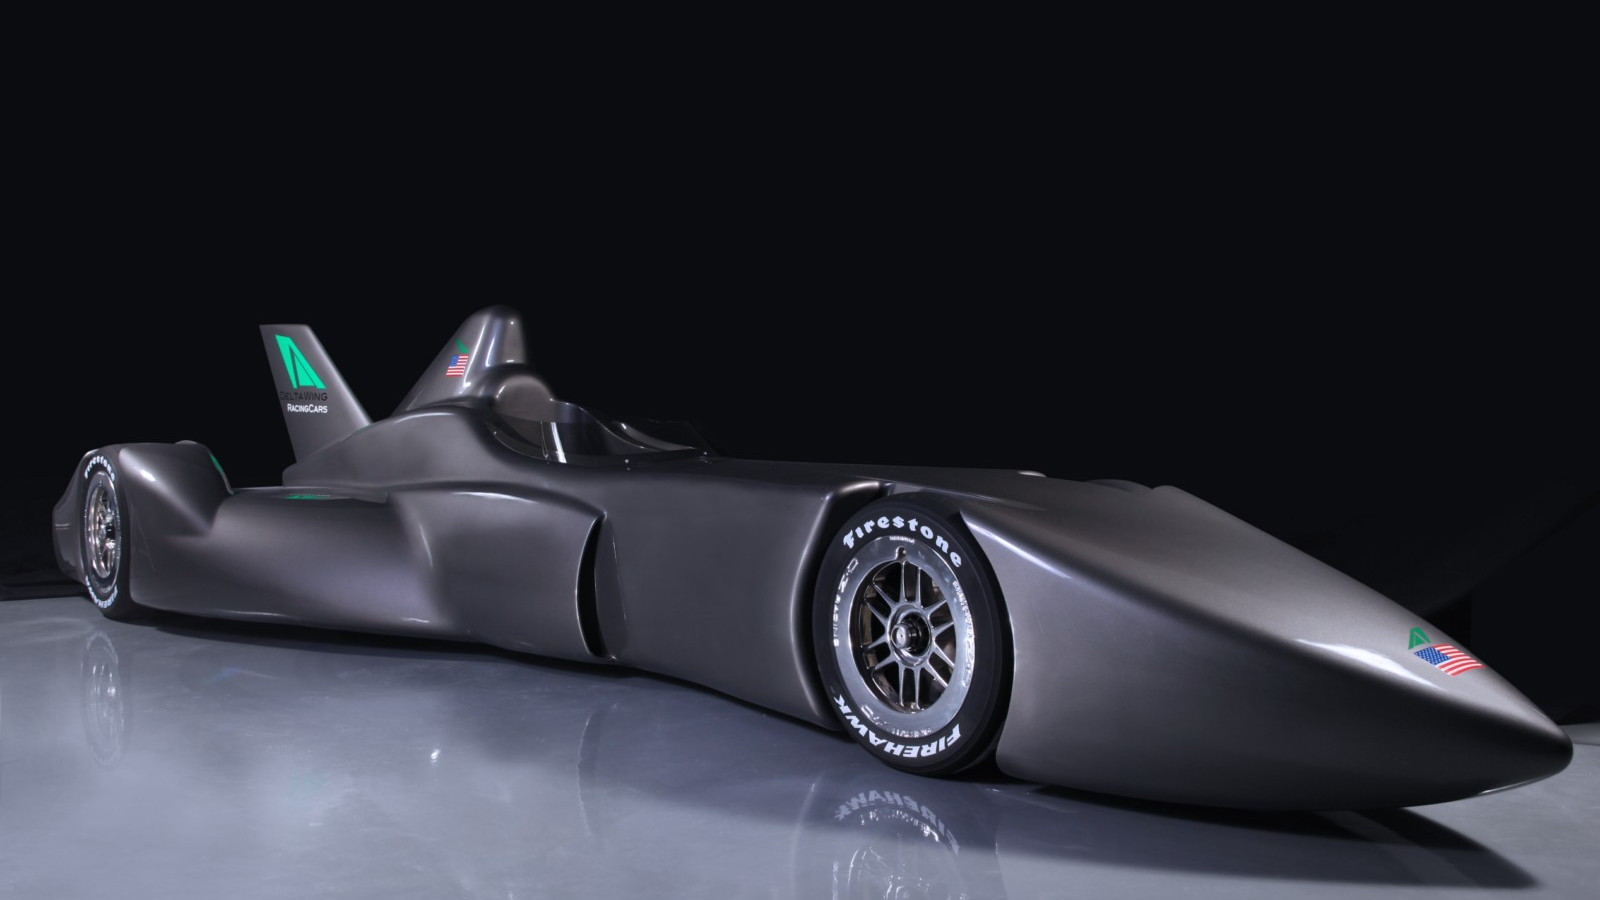 2012 Delta Wing IndyCar race car concept